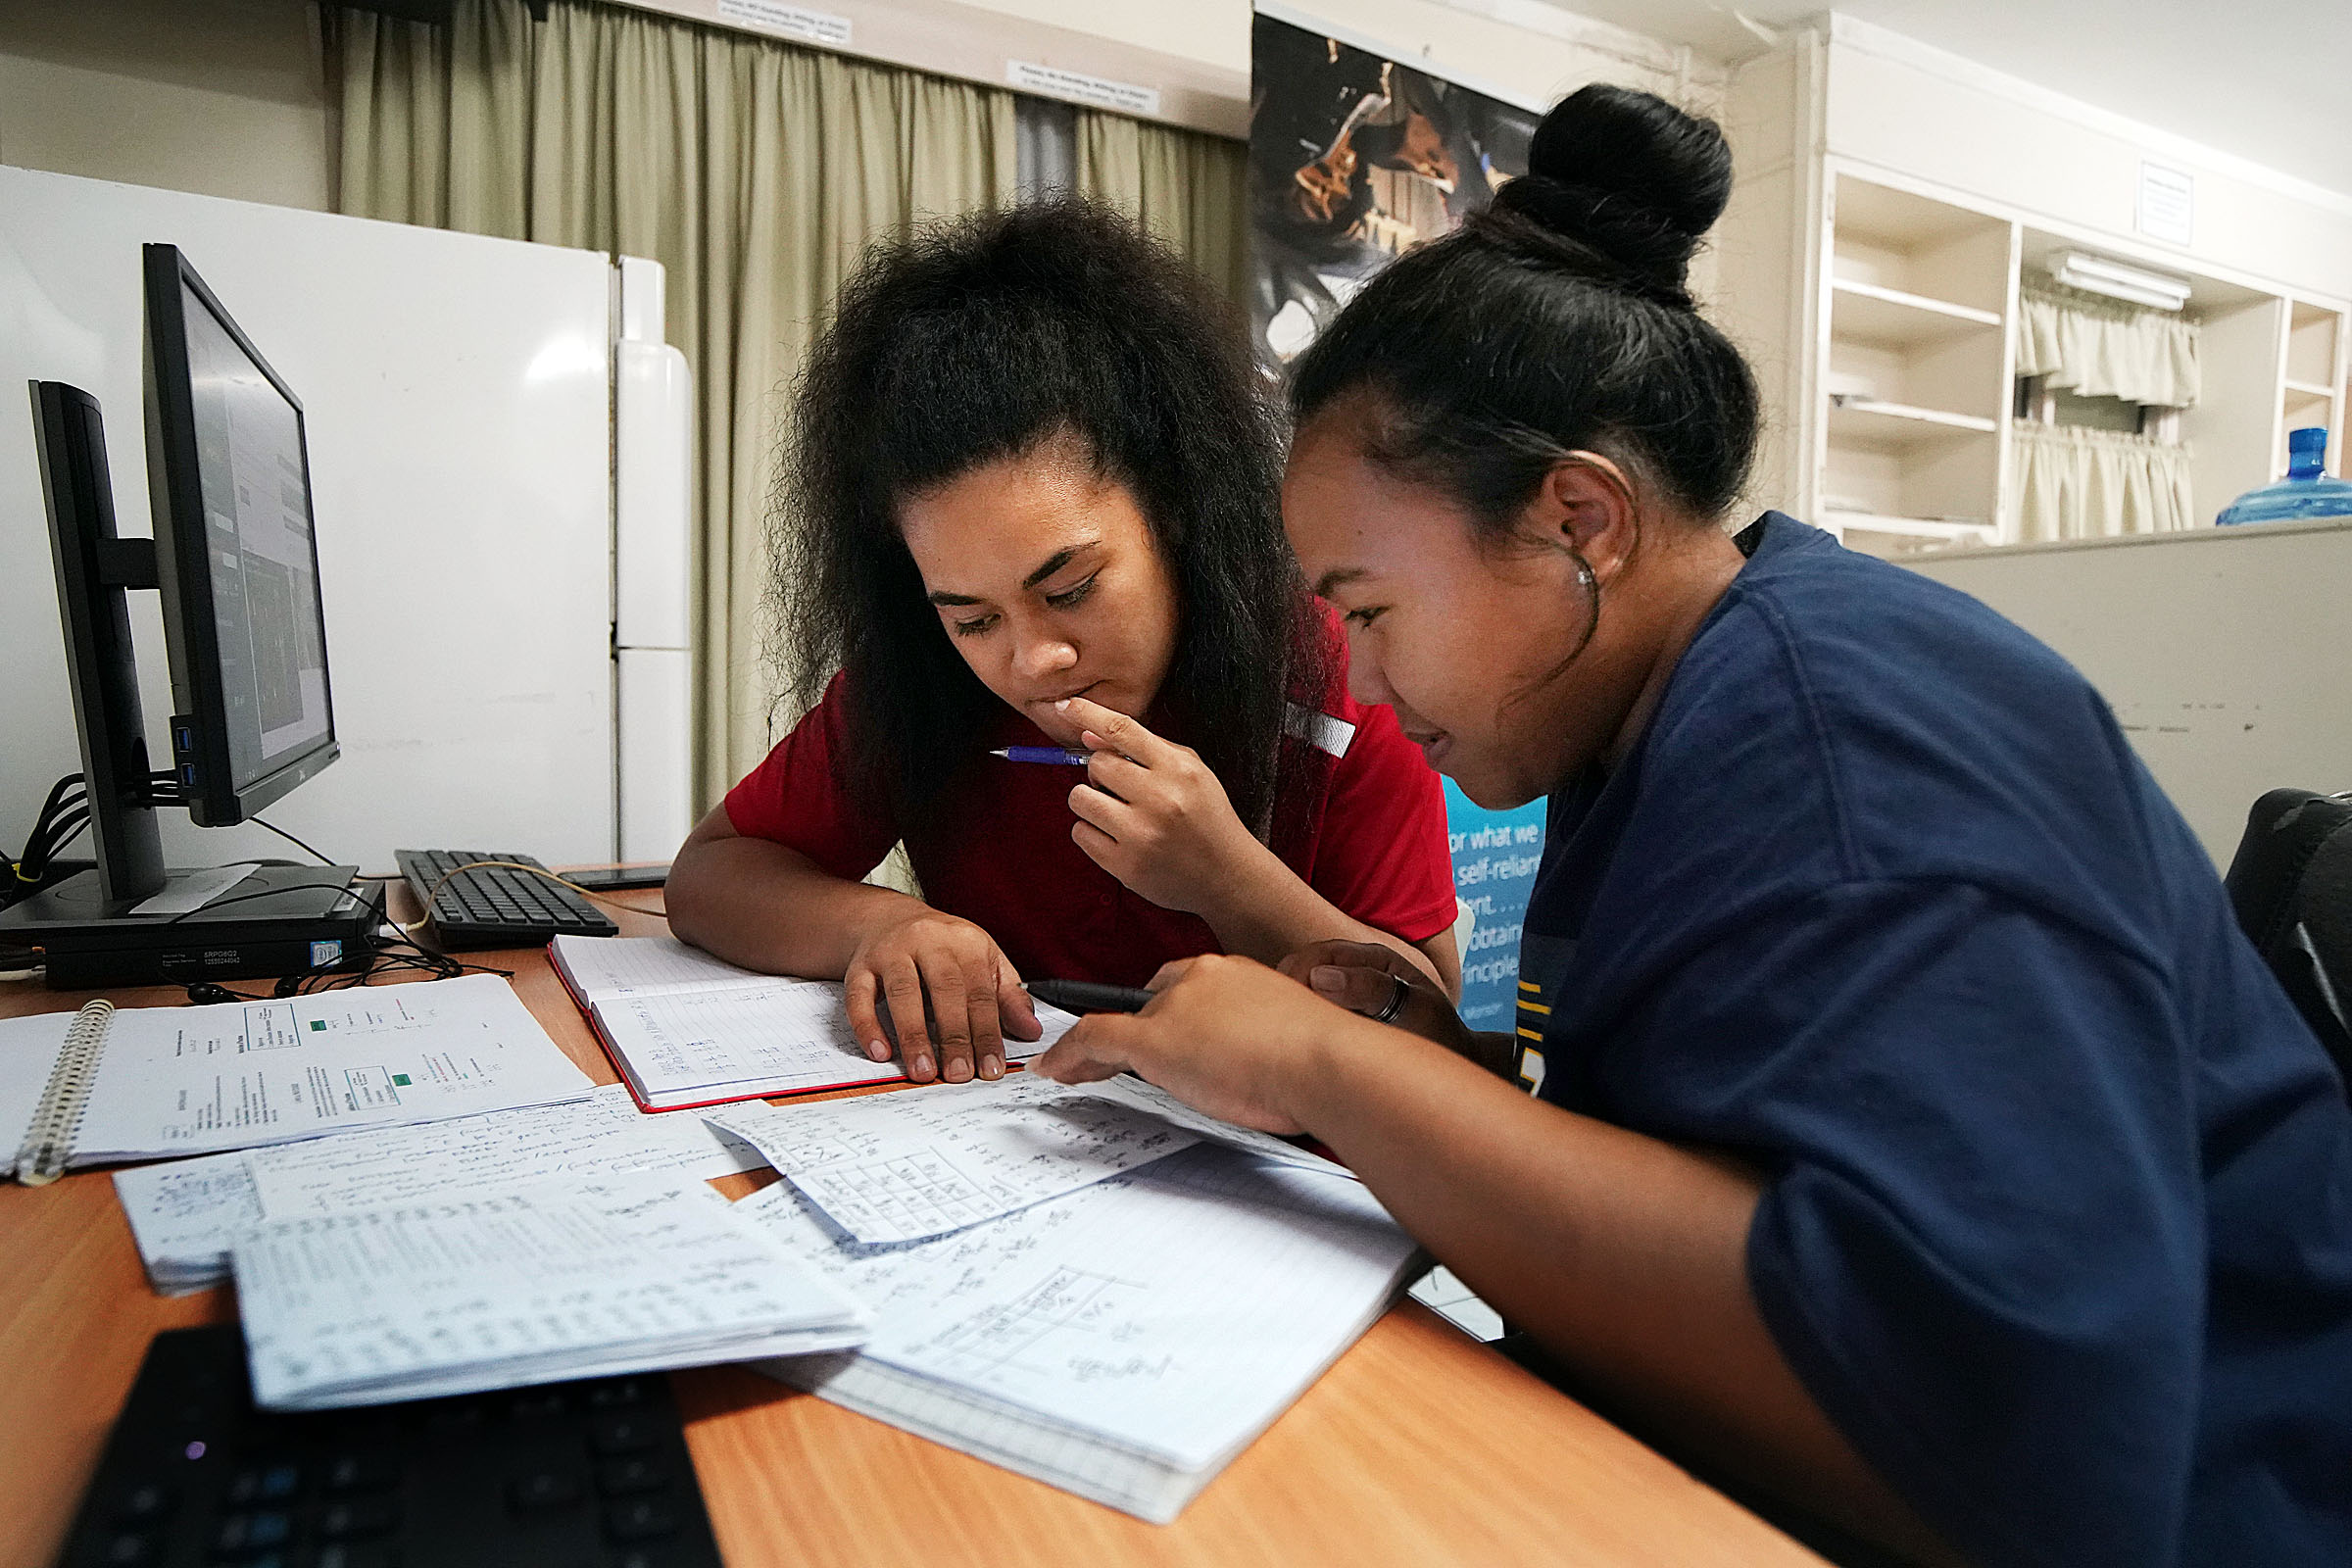 Clorissa Tauti, left, and Shirley Sa'u work together to learn personal finance during a group session of the PathwayConnect program in Apia, Samoa, on Thursday, May 16, 2019.